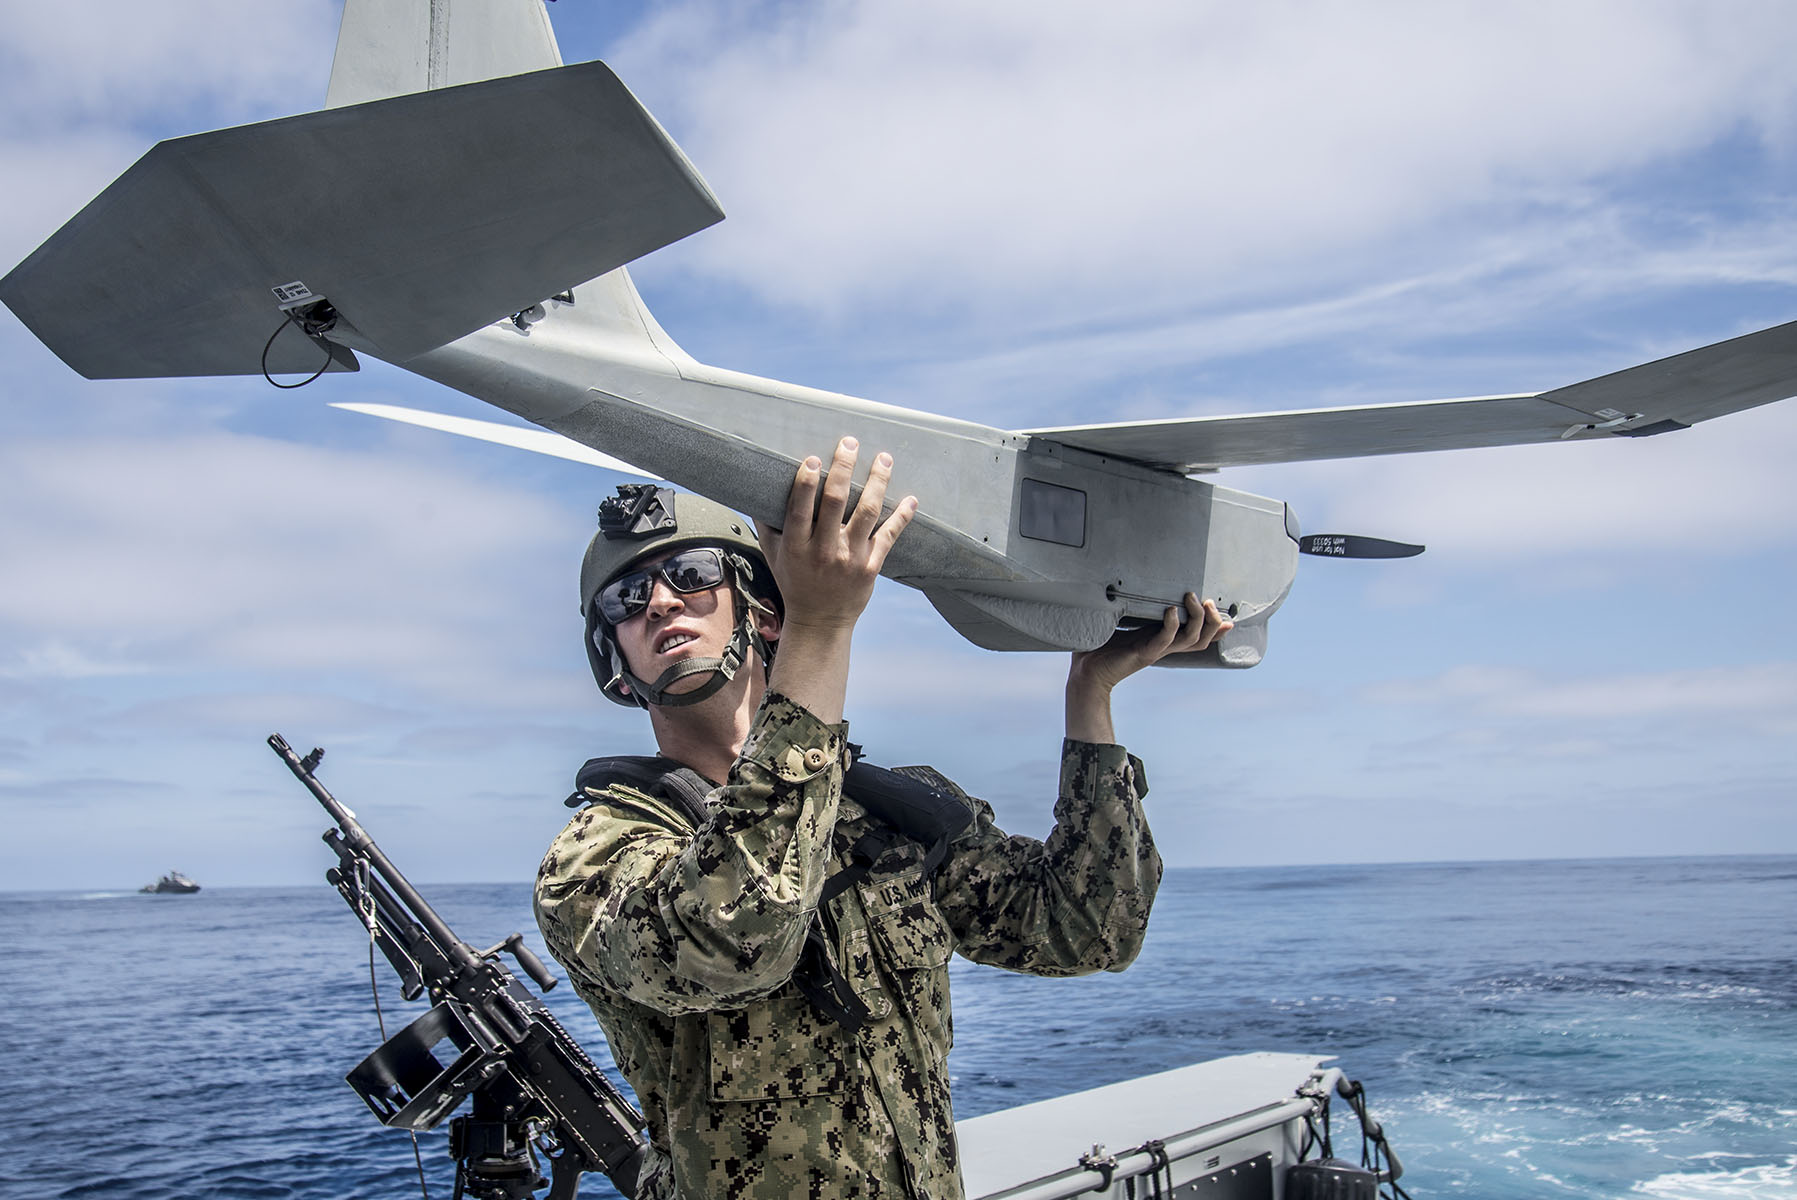 Operations Specialist 3rd Class Neil Wierboski, assigned to Coastal Riverine Squadron 3, prepares the unmanned aerial vehicle for launch aboard a Mark VI patrol boat during training. (BMC Nelson Doromal Jr./Navy)